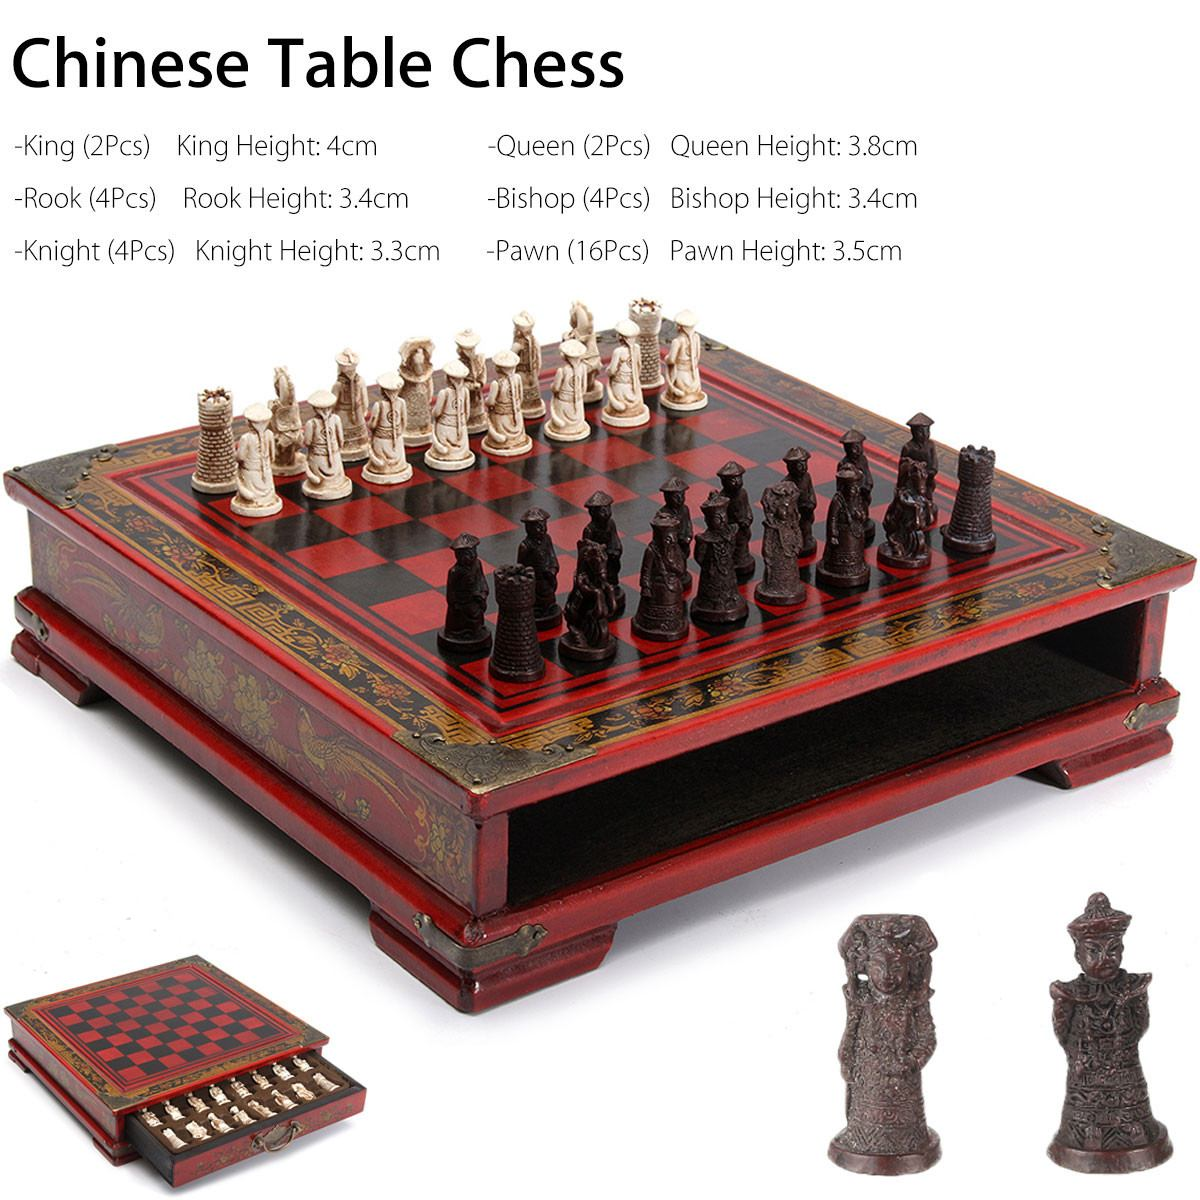 32Pcs/Set Wooden Table Chess Chinese Chess Games Resin Chessman Christmas Birthday Premium Gifts Entertainment Board Game